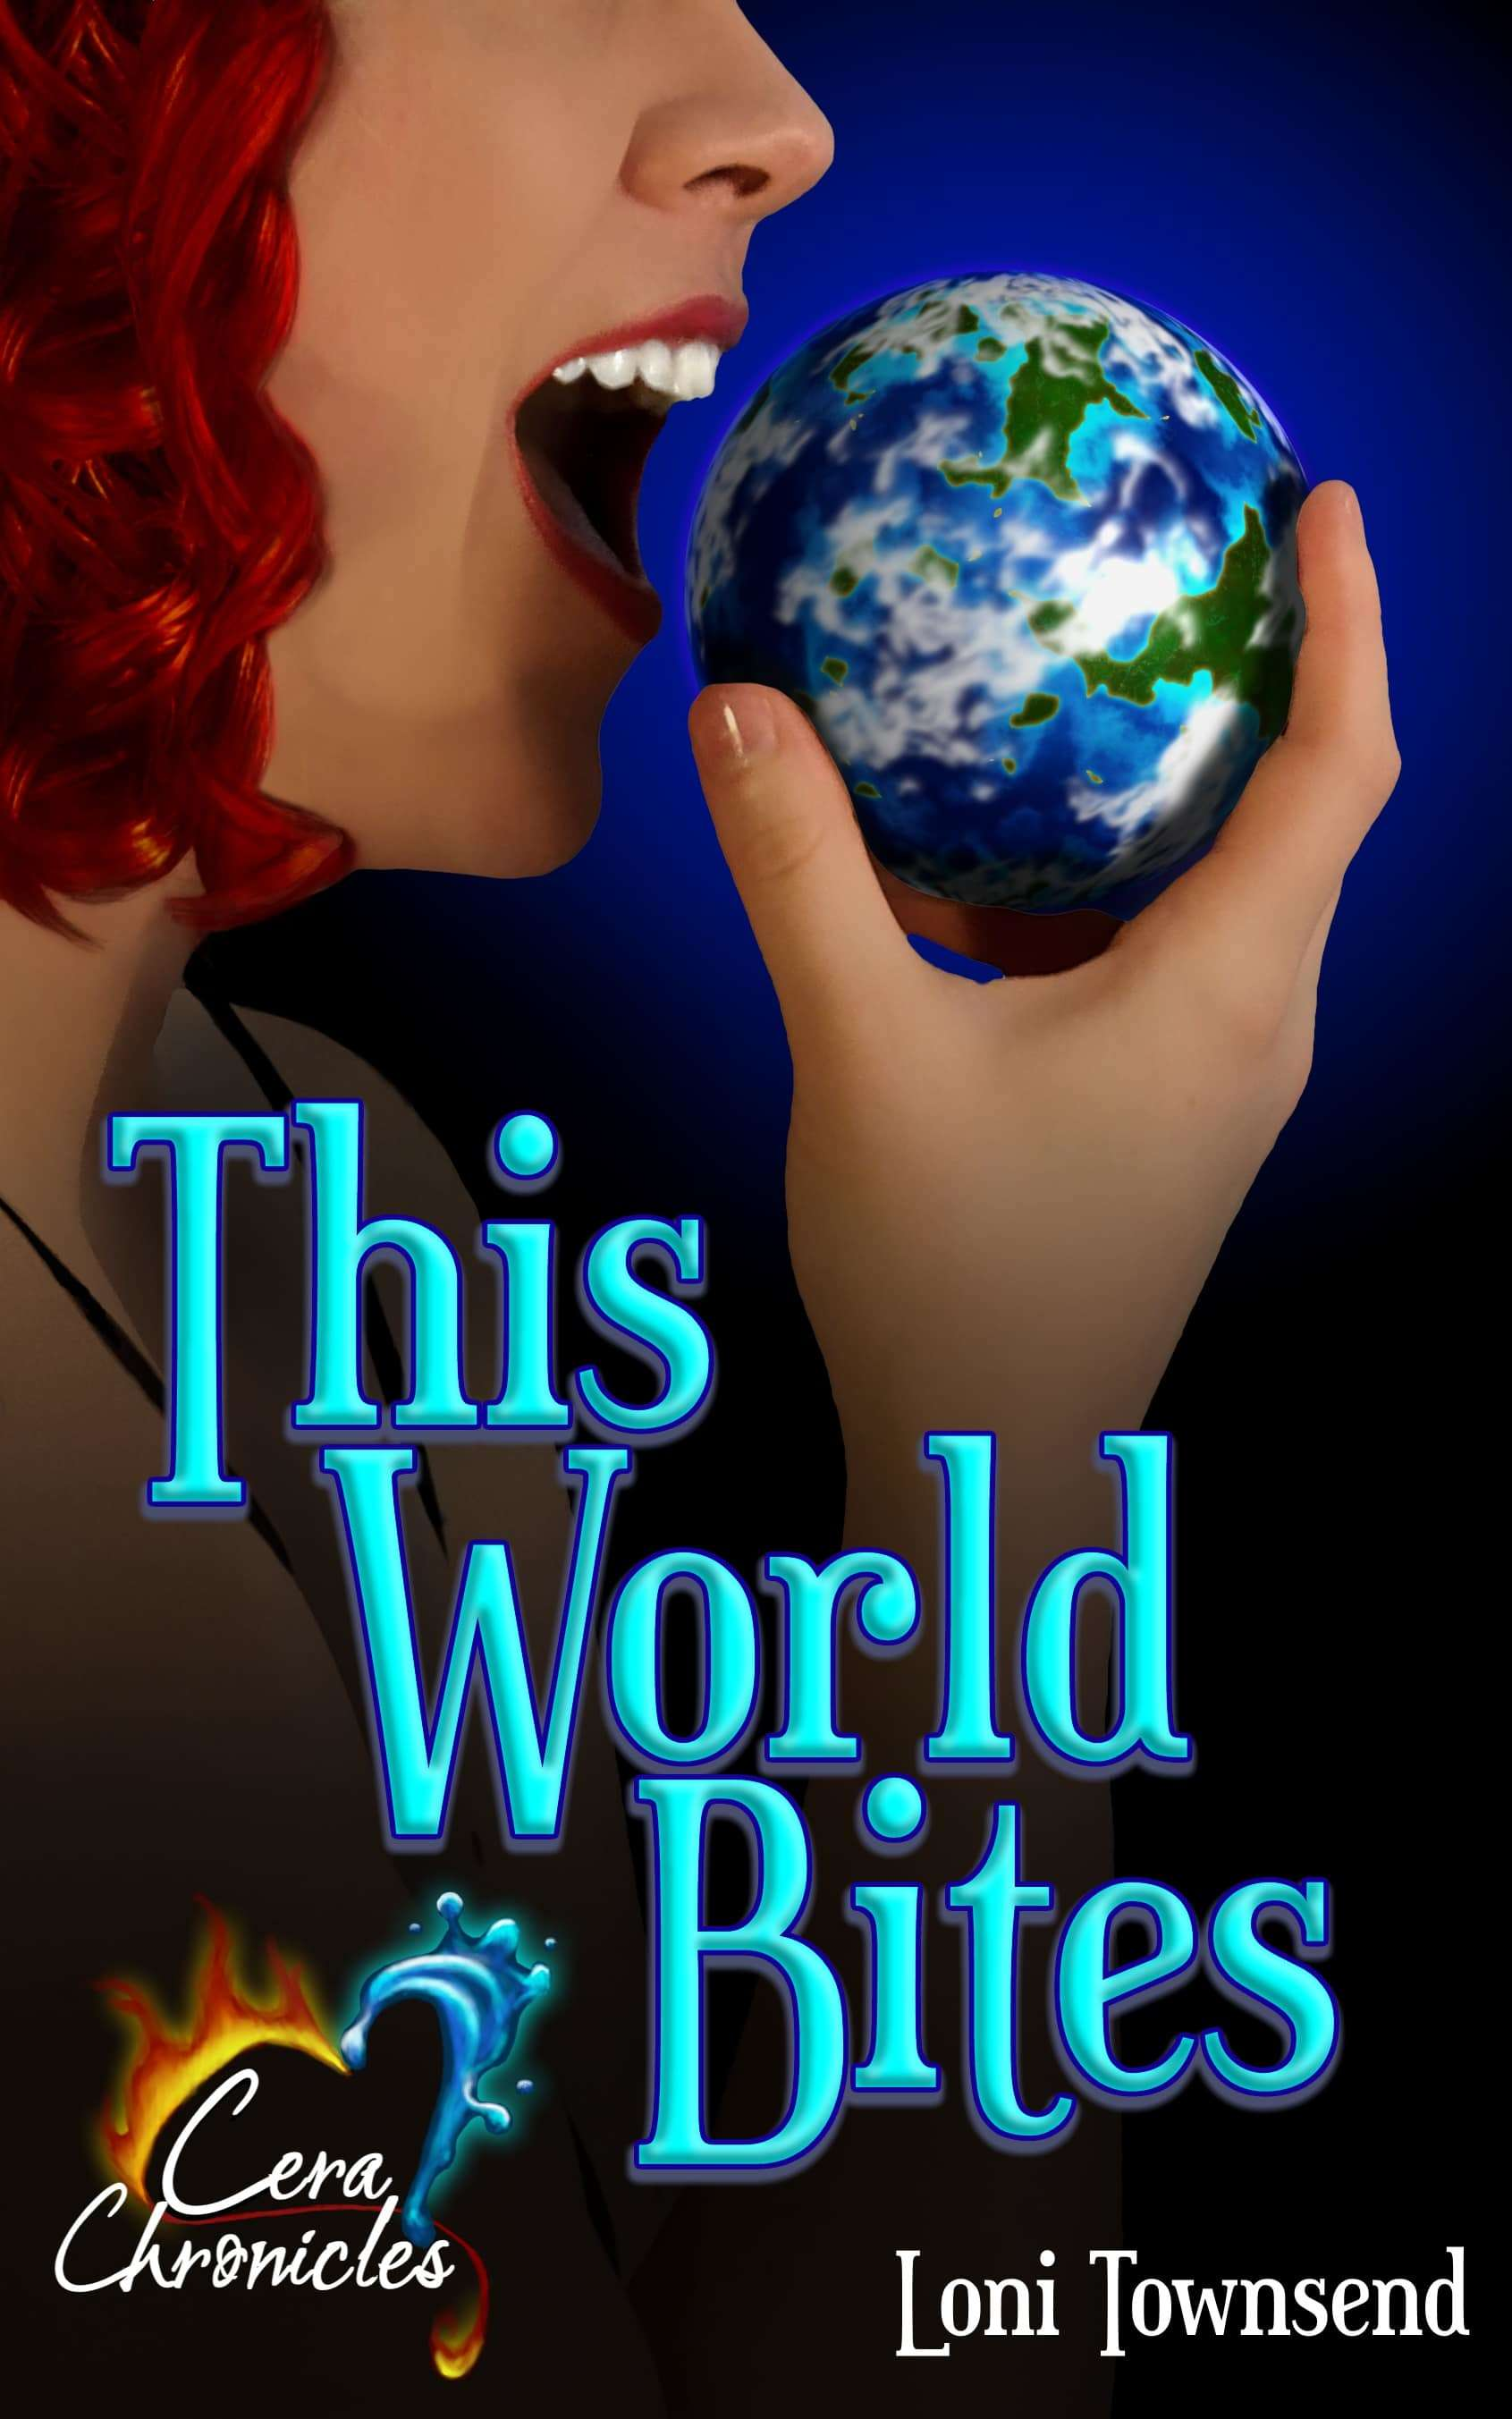 This World Bites